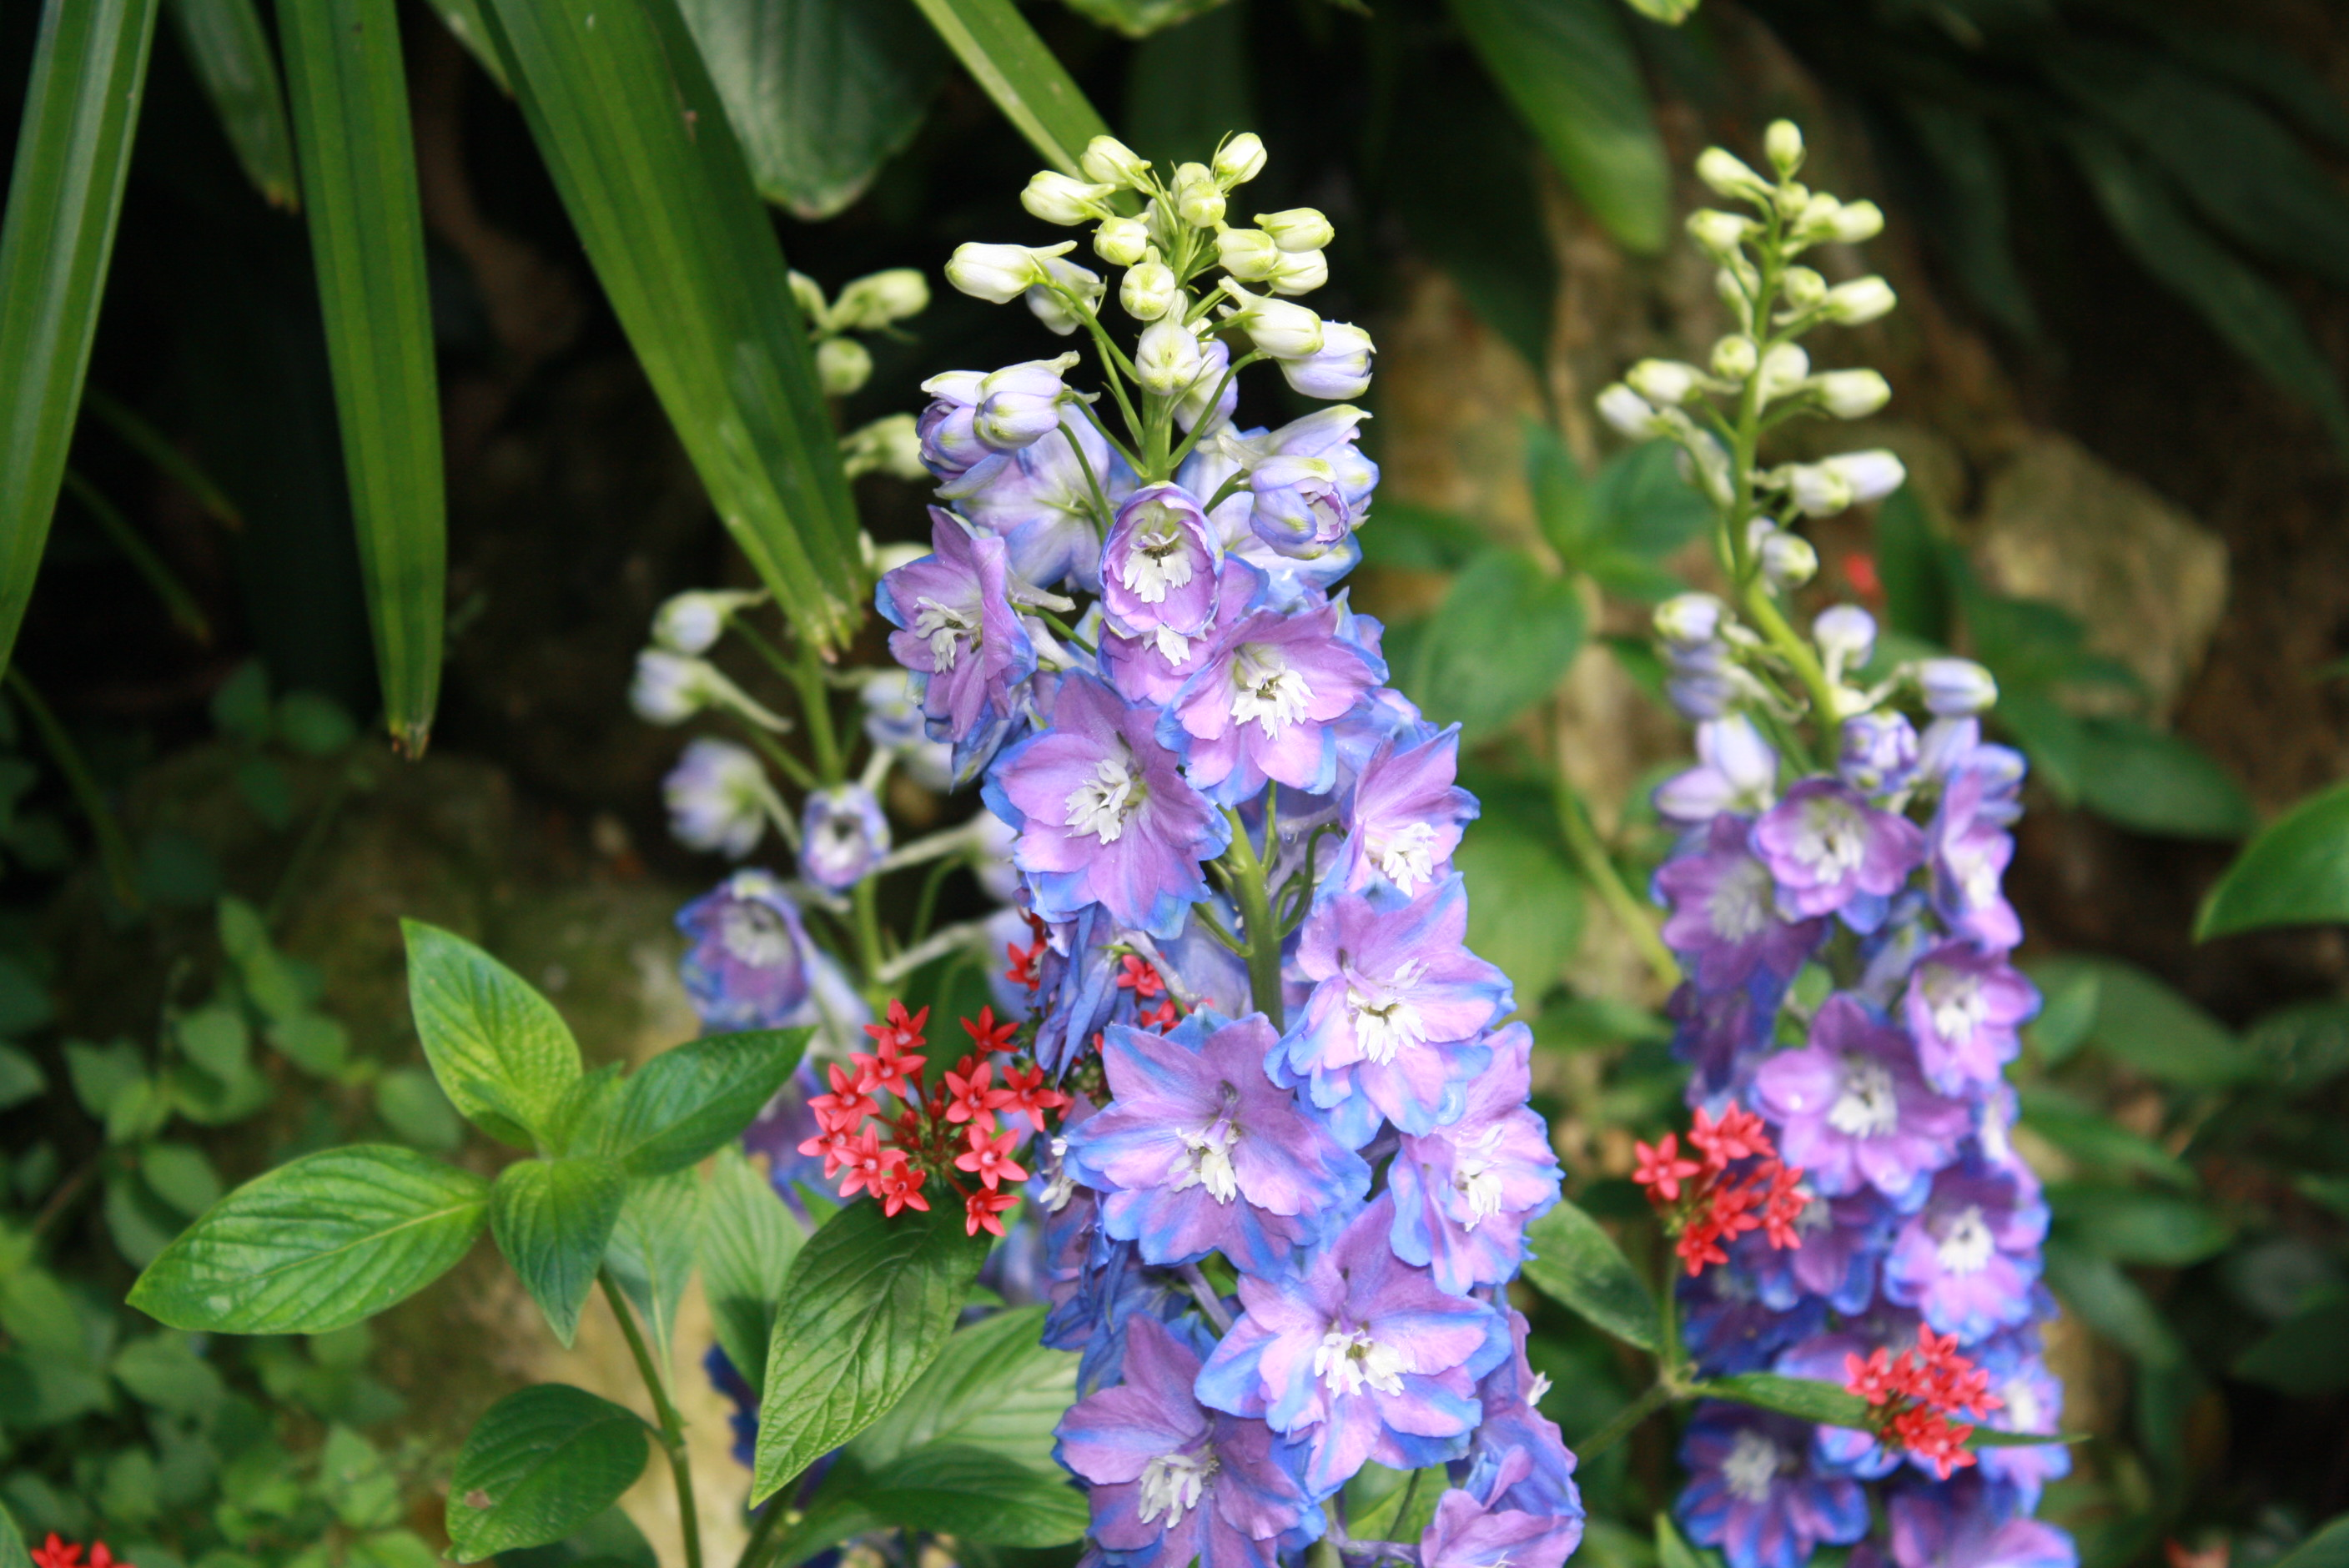 Winter annuals a fantastic color option gardening in the panhandle delphiniums izmirmasajfo